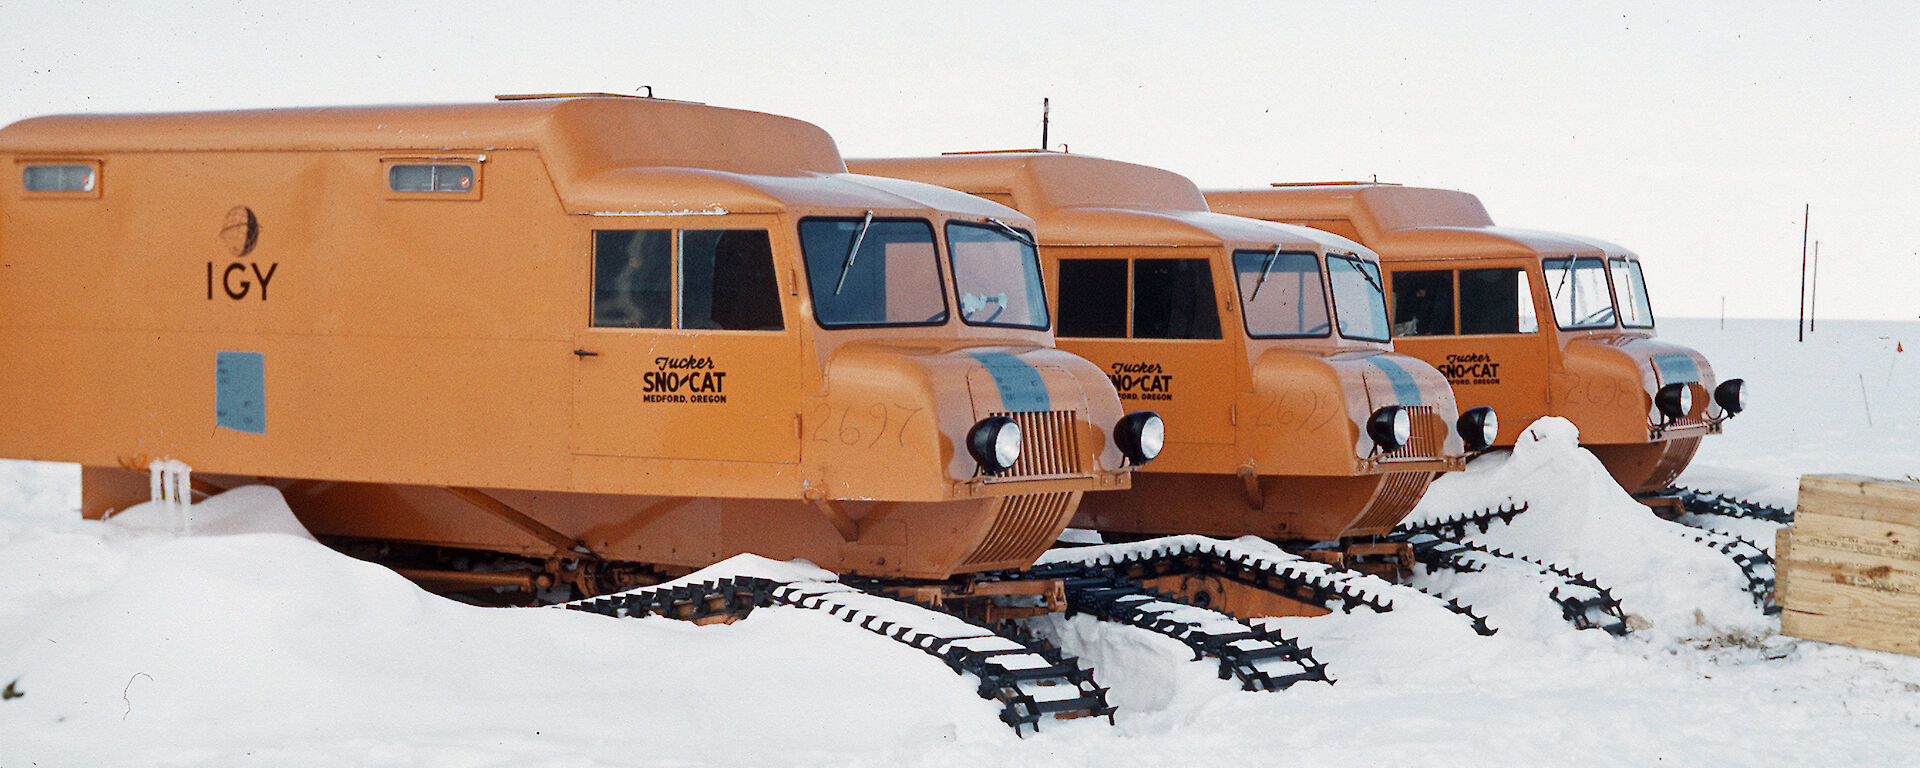 Snow cats used by Australia during the International Geophysical Year